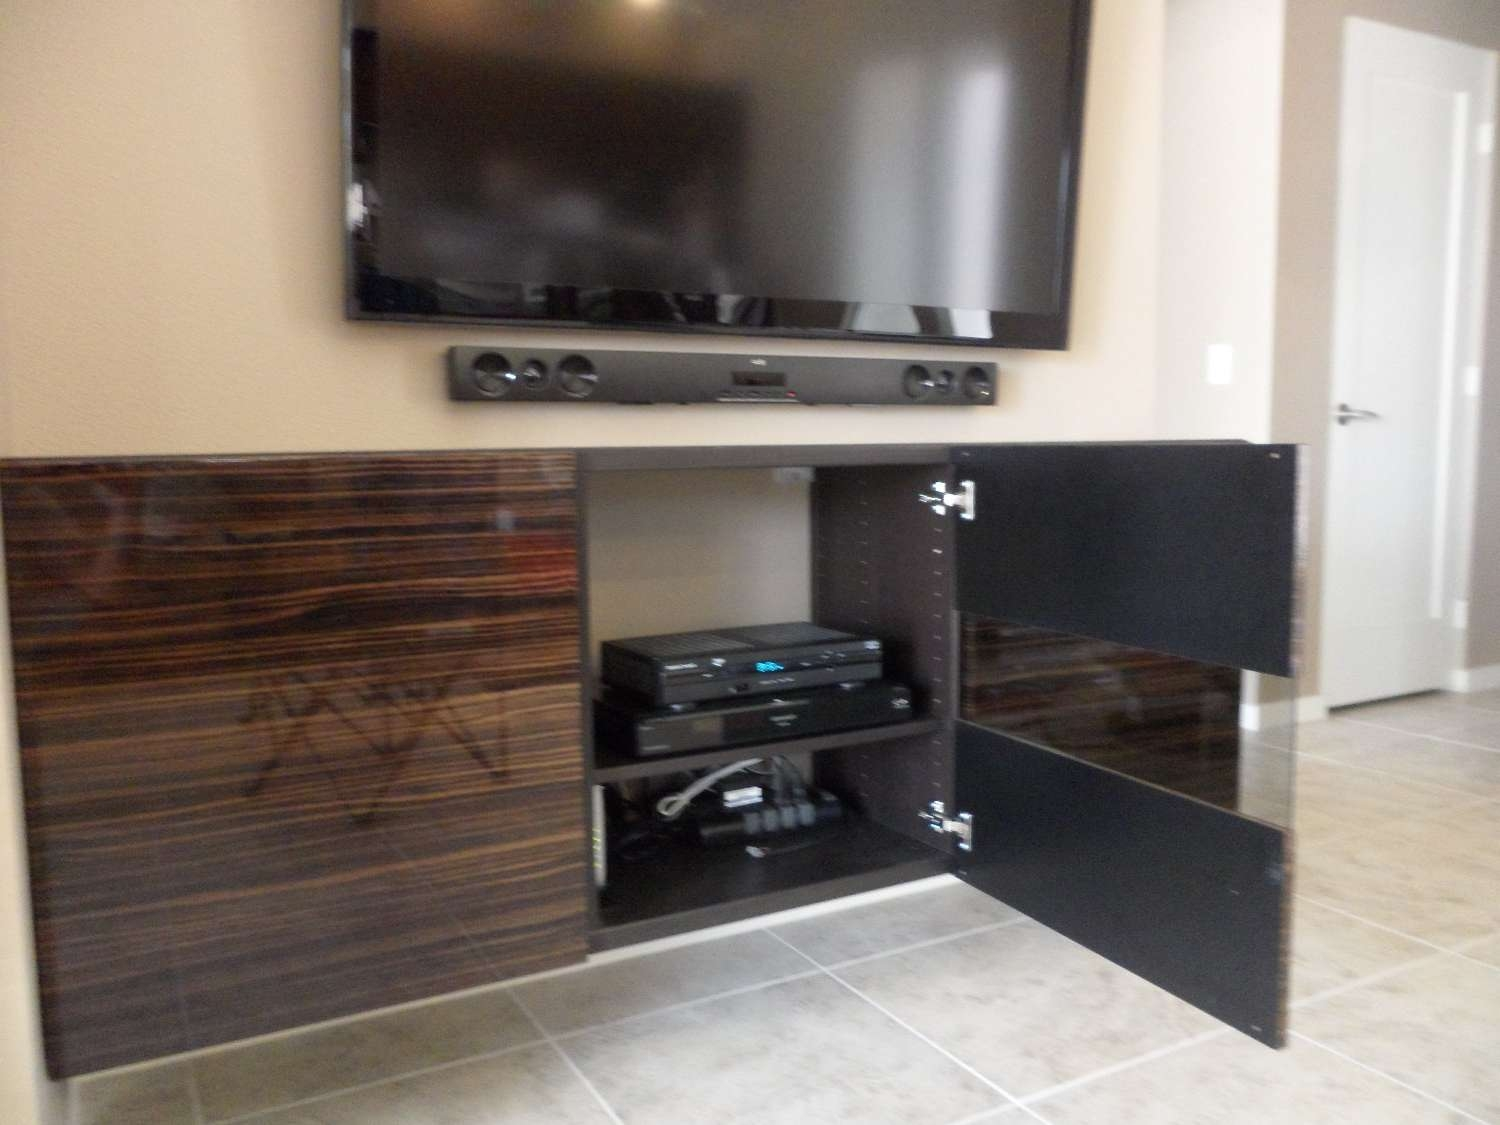 Ikea Tv Stand With Glass Doors Images – Doors Design Ideas In Wall Mounted Tv Cabinets Ikea (View 9 of 20)